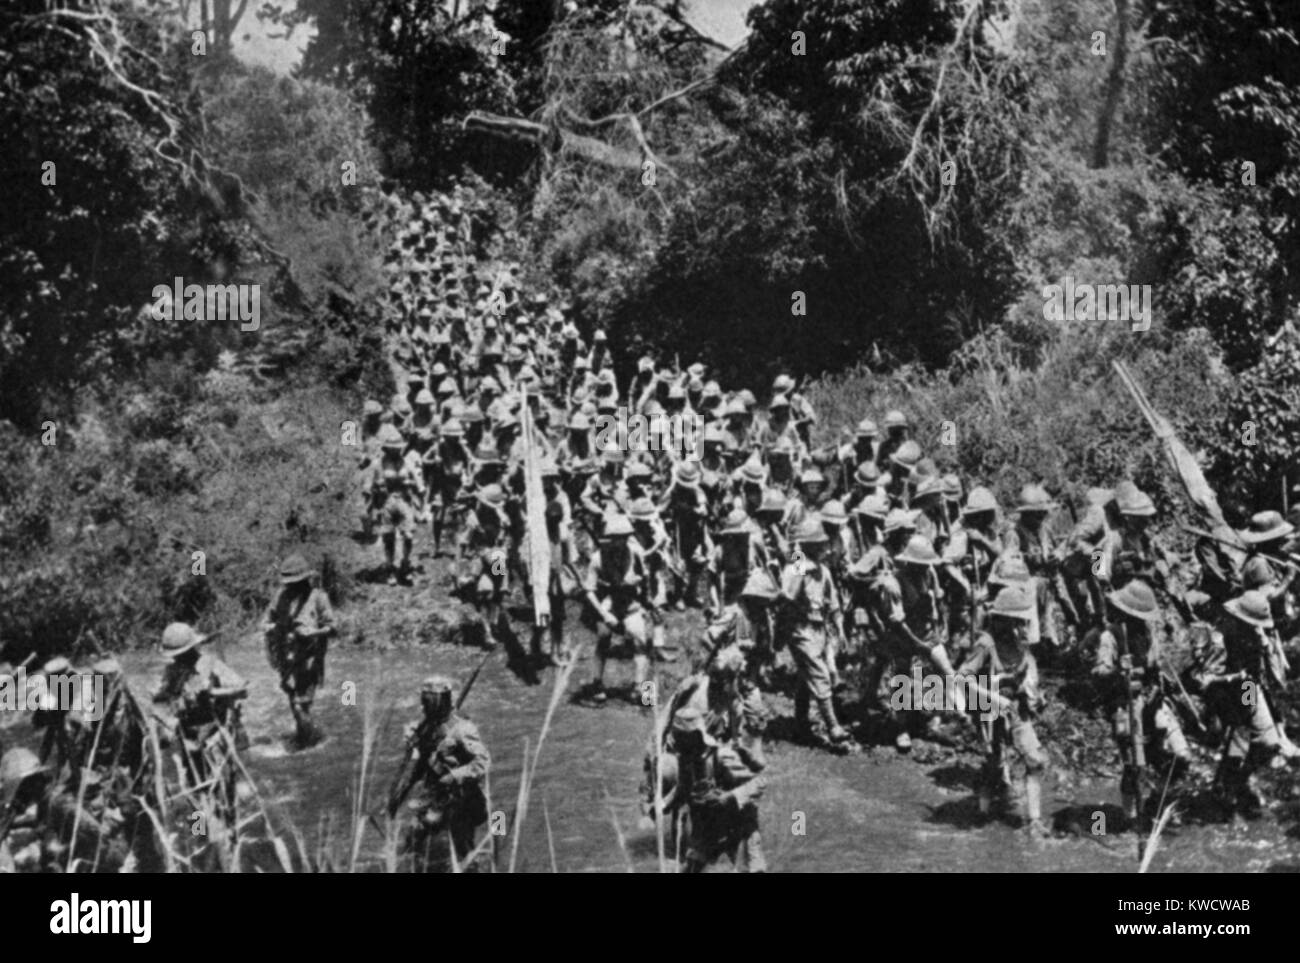 World War 1 in Africa. British African troops on the march to Kilimanjaro. The Operation began on Feb. 25, 1916 - Stock Image